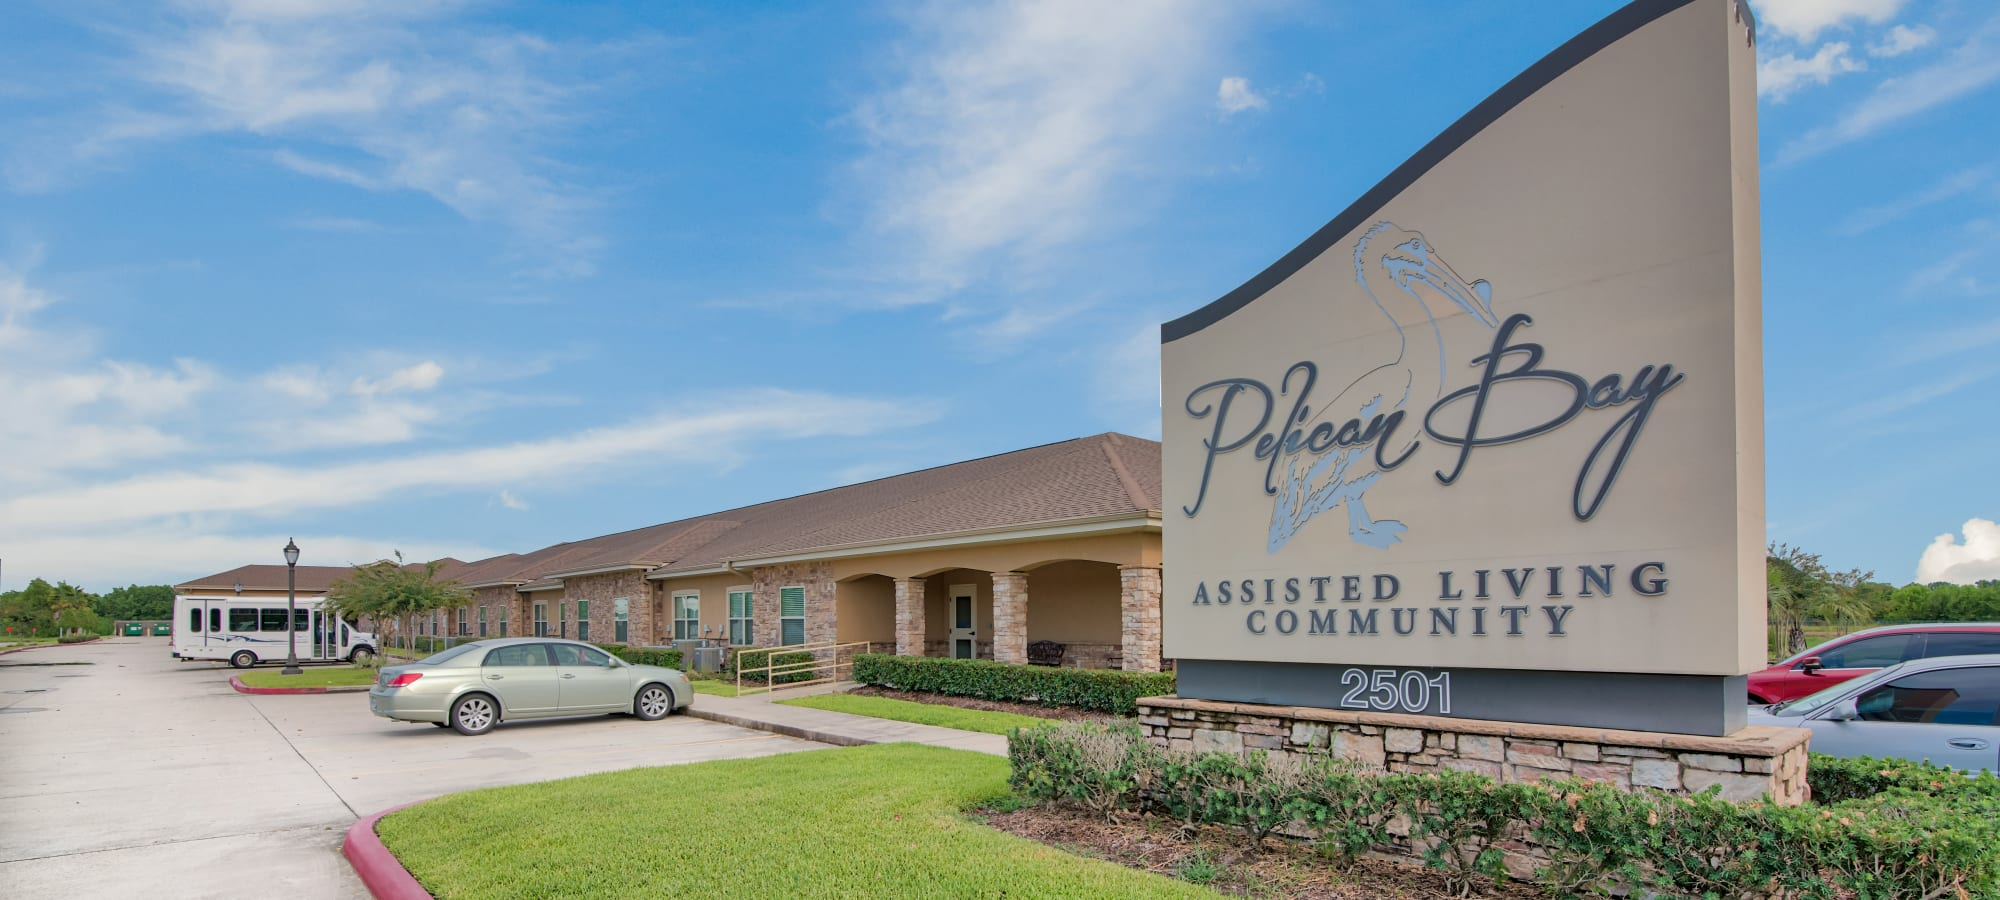 Senior living at Pelican Bay in Beaumont, Texas